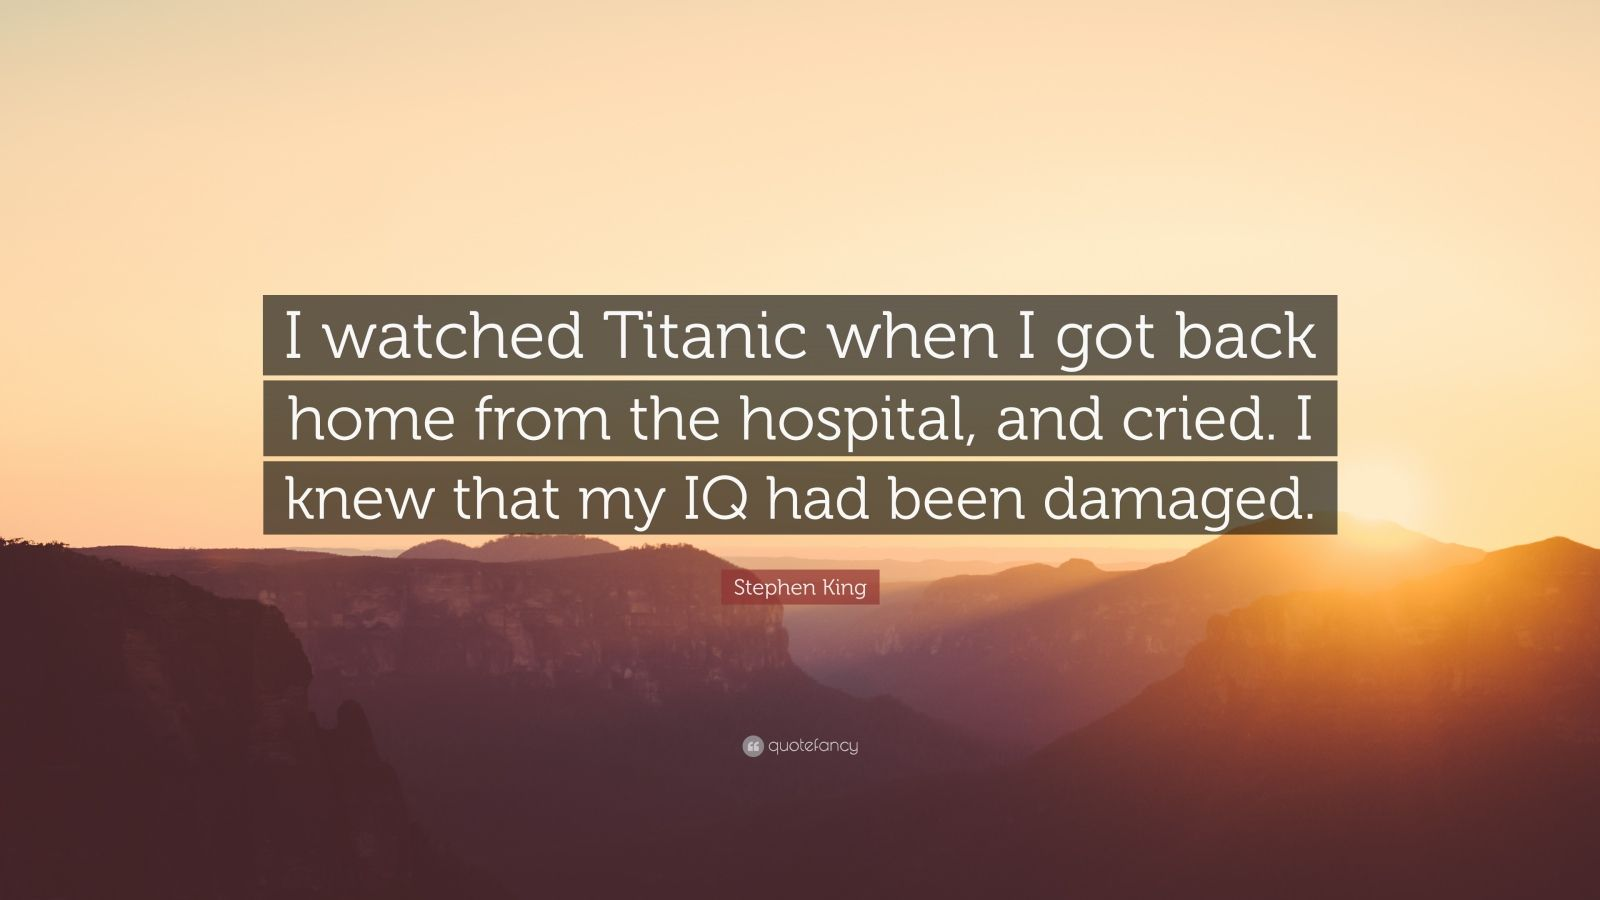 """Stephen King Quote: """"I watched Titanic when I got back home from the hospital, and cried. I knew that my IQ had been damaged."""""""